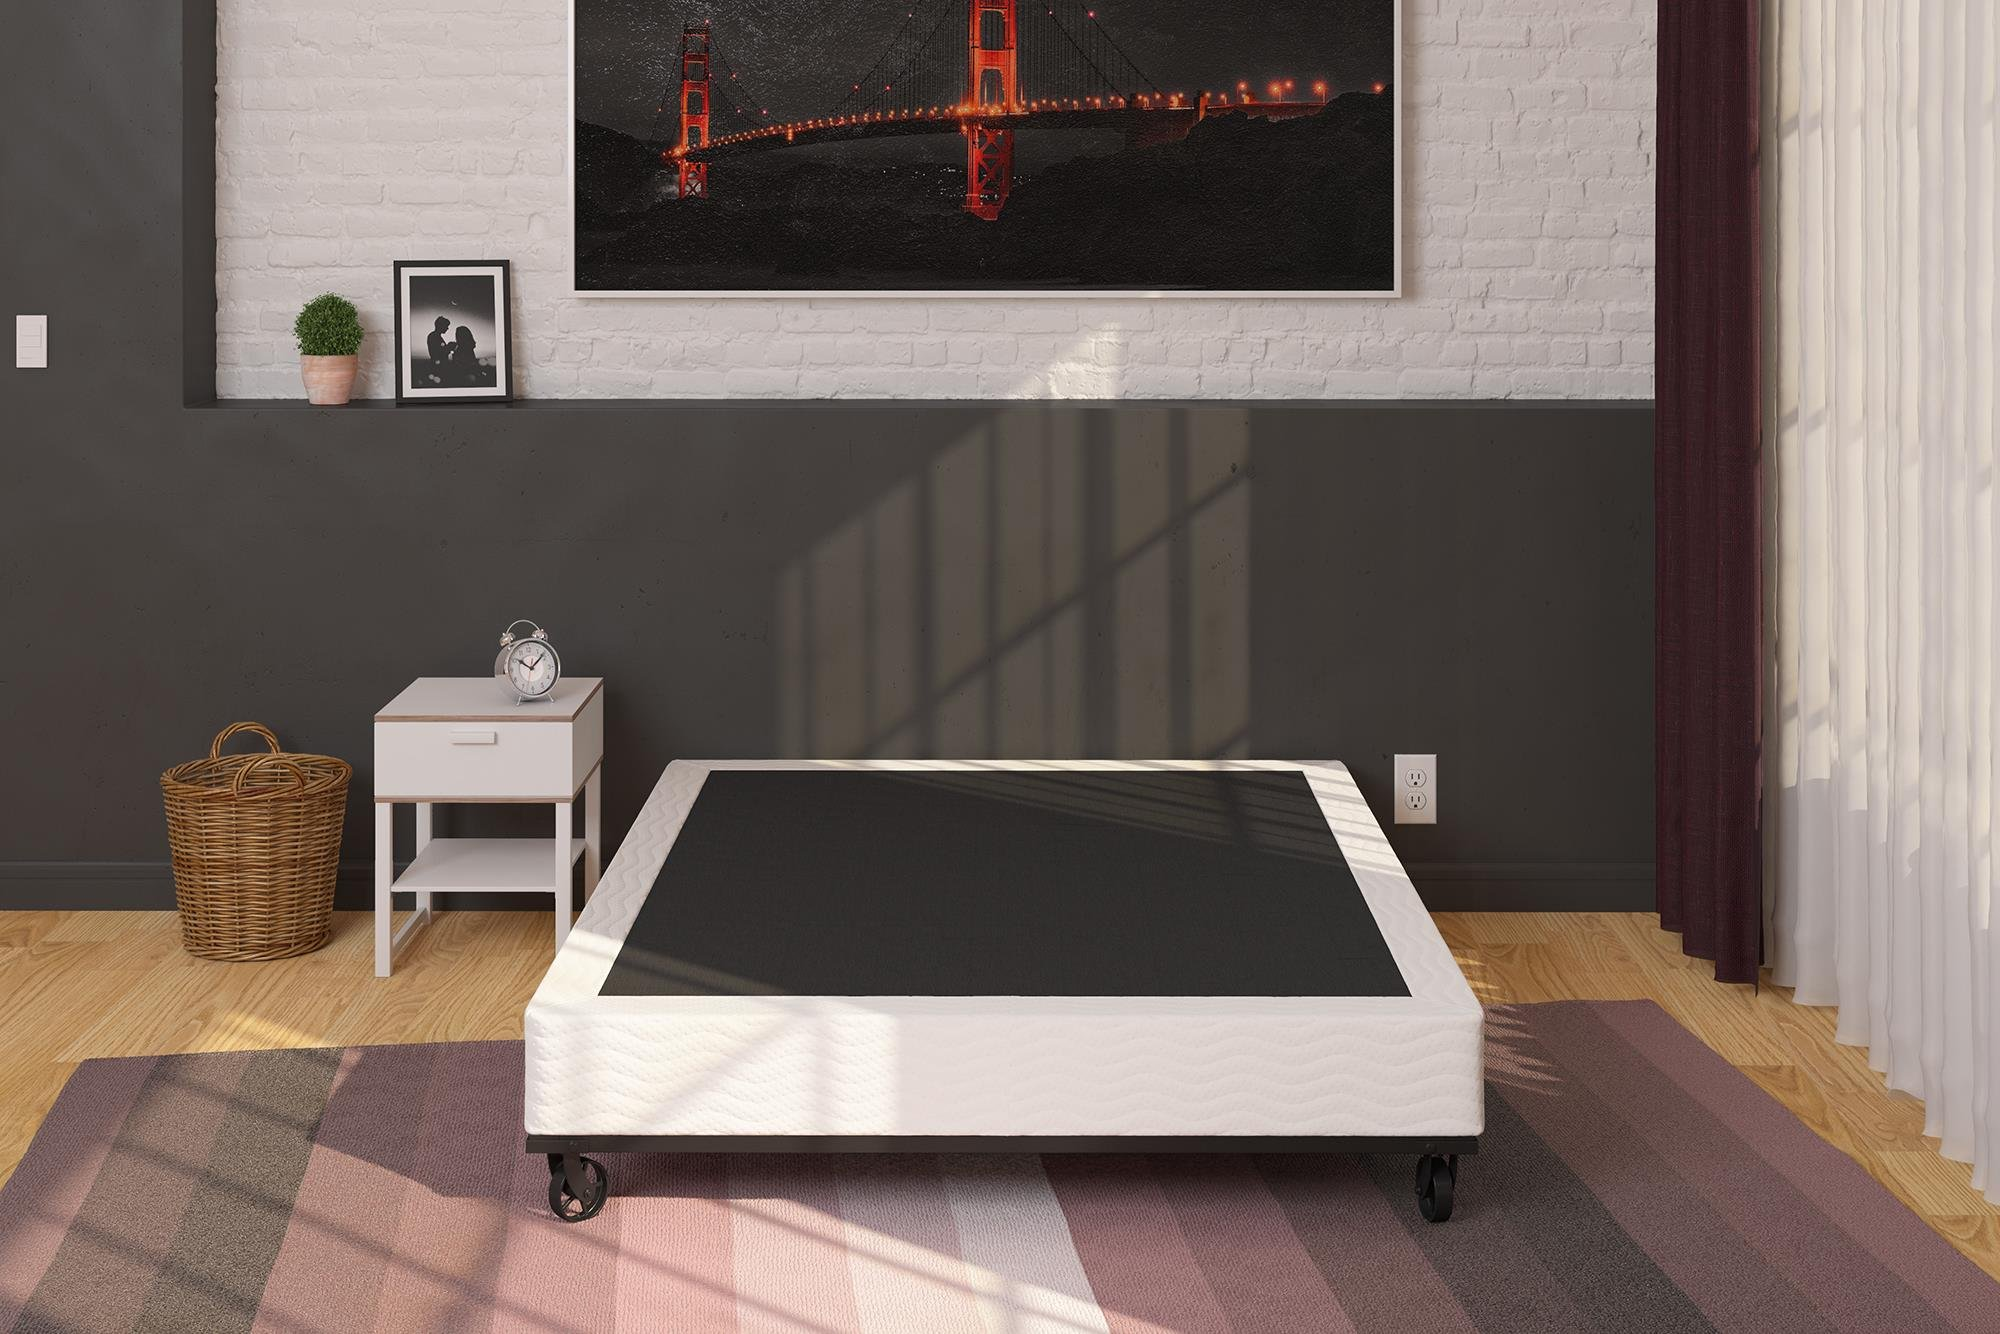 Signature Sleep Gold 7-Inch Folding Foundation mattress and Box Spring with Cover, Full Size Frame by Signature Sleep